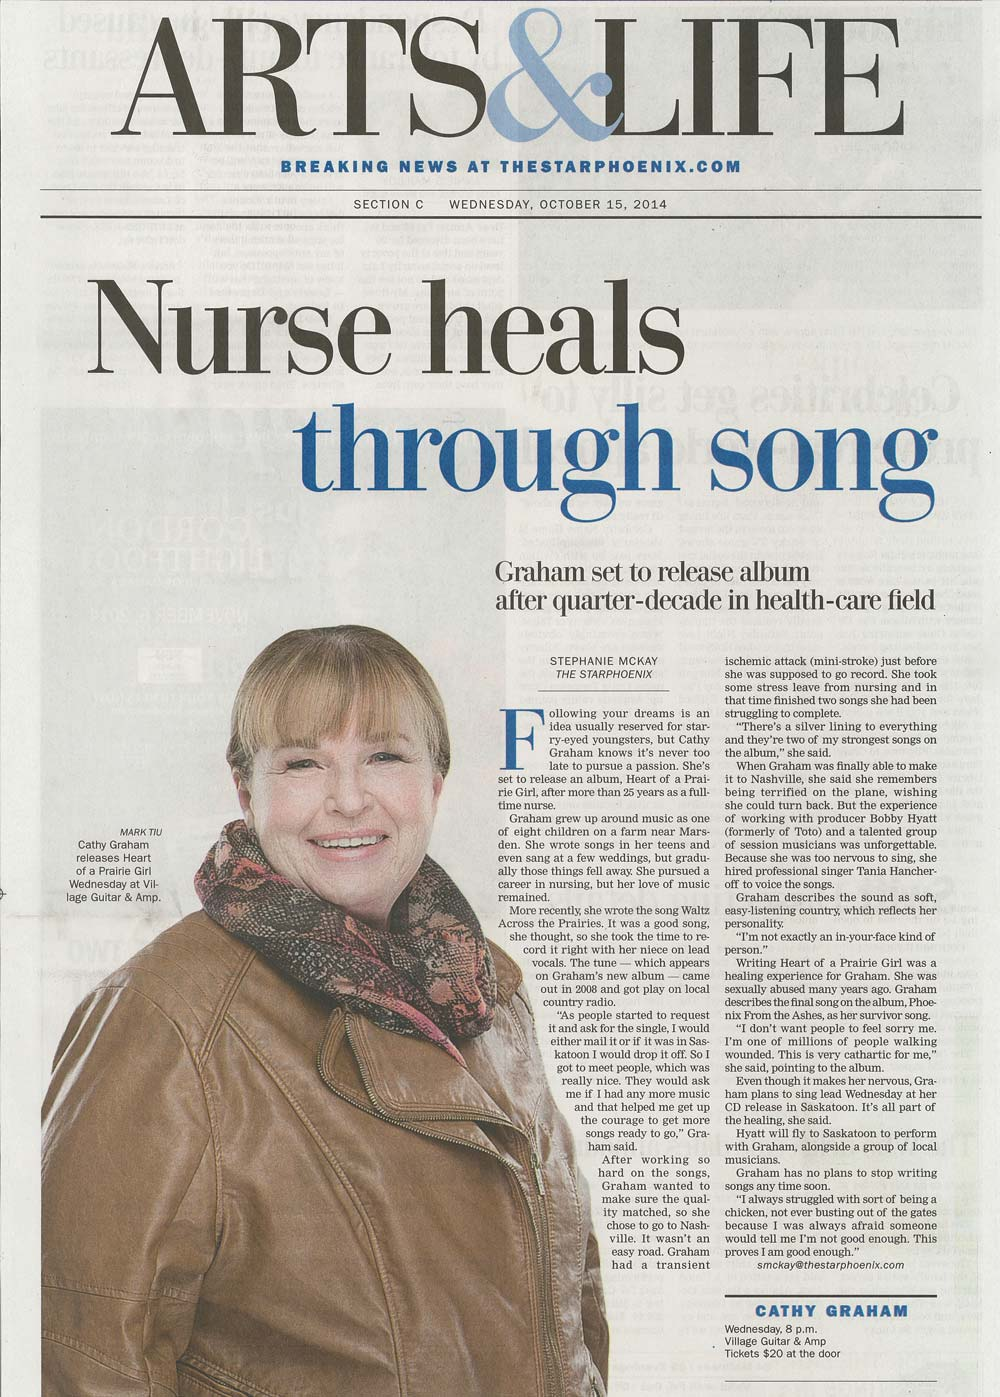 """Nurse Heals Through Song"" Star Phoenix Article with Cathy Graham"